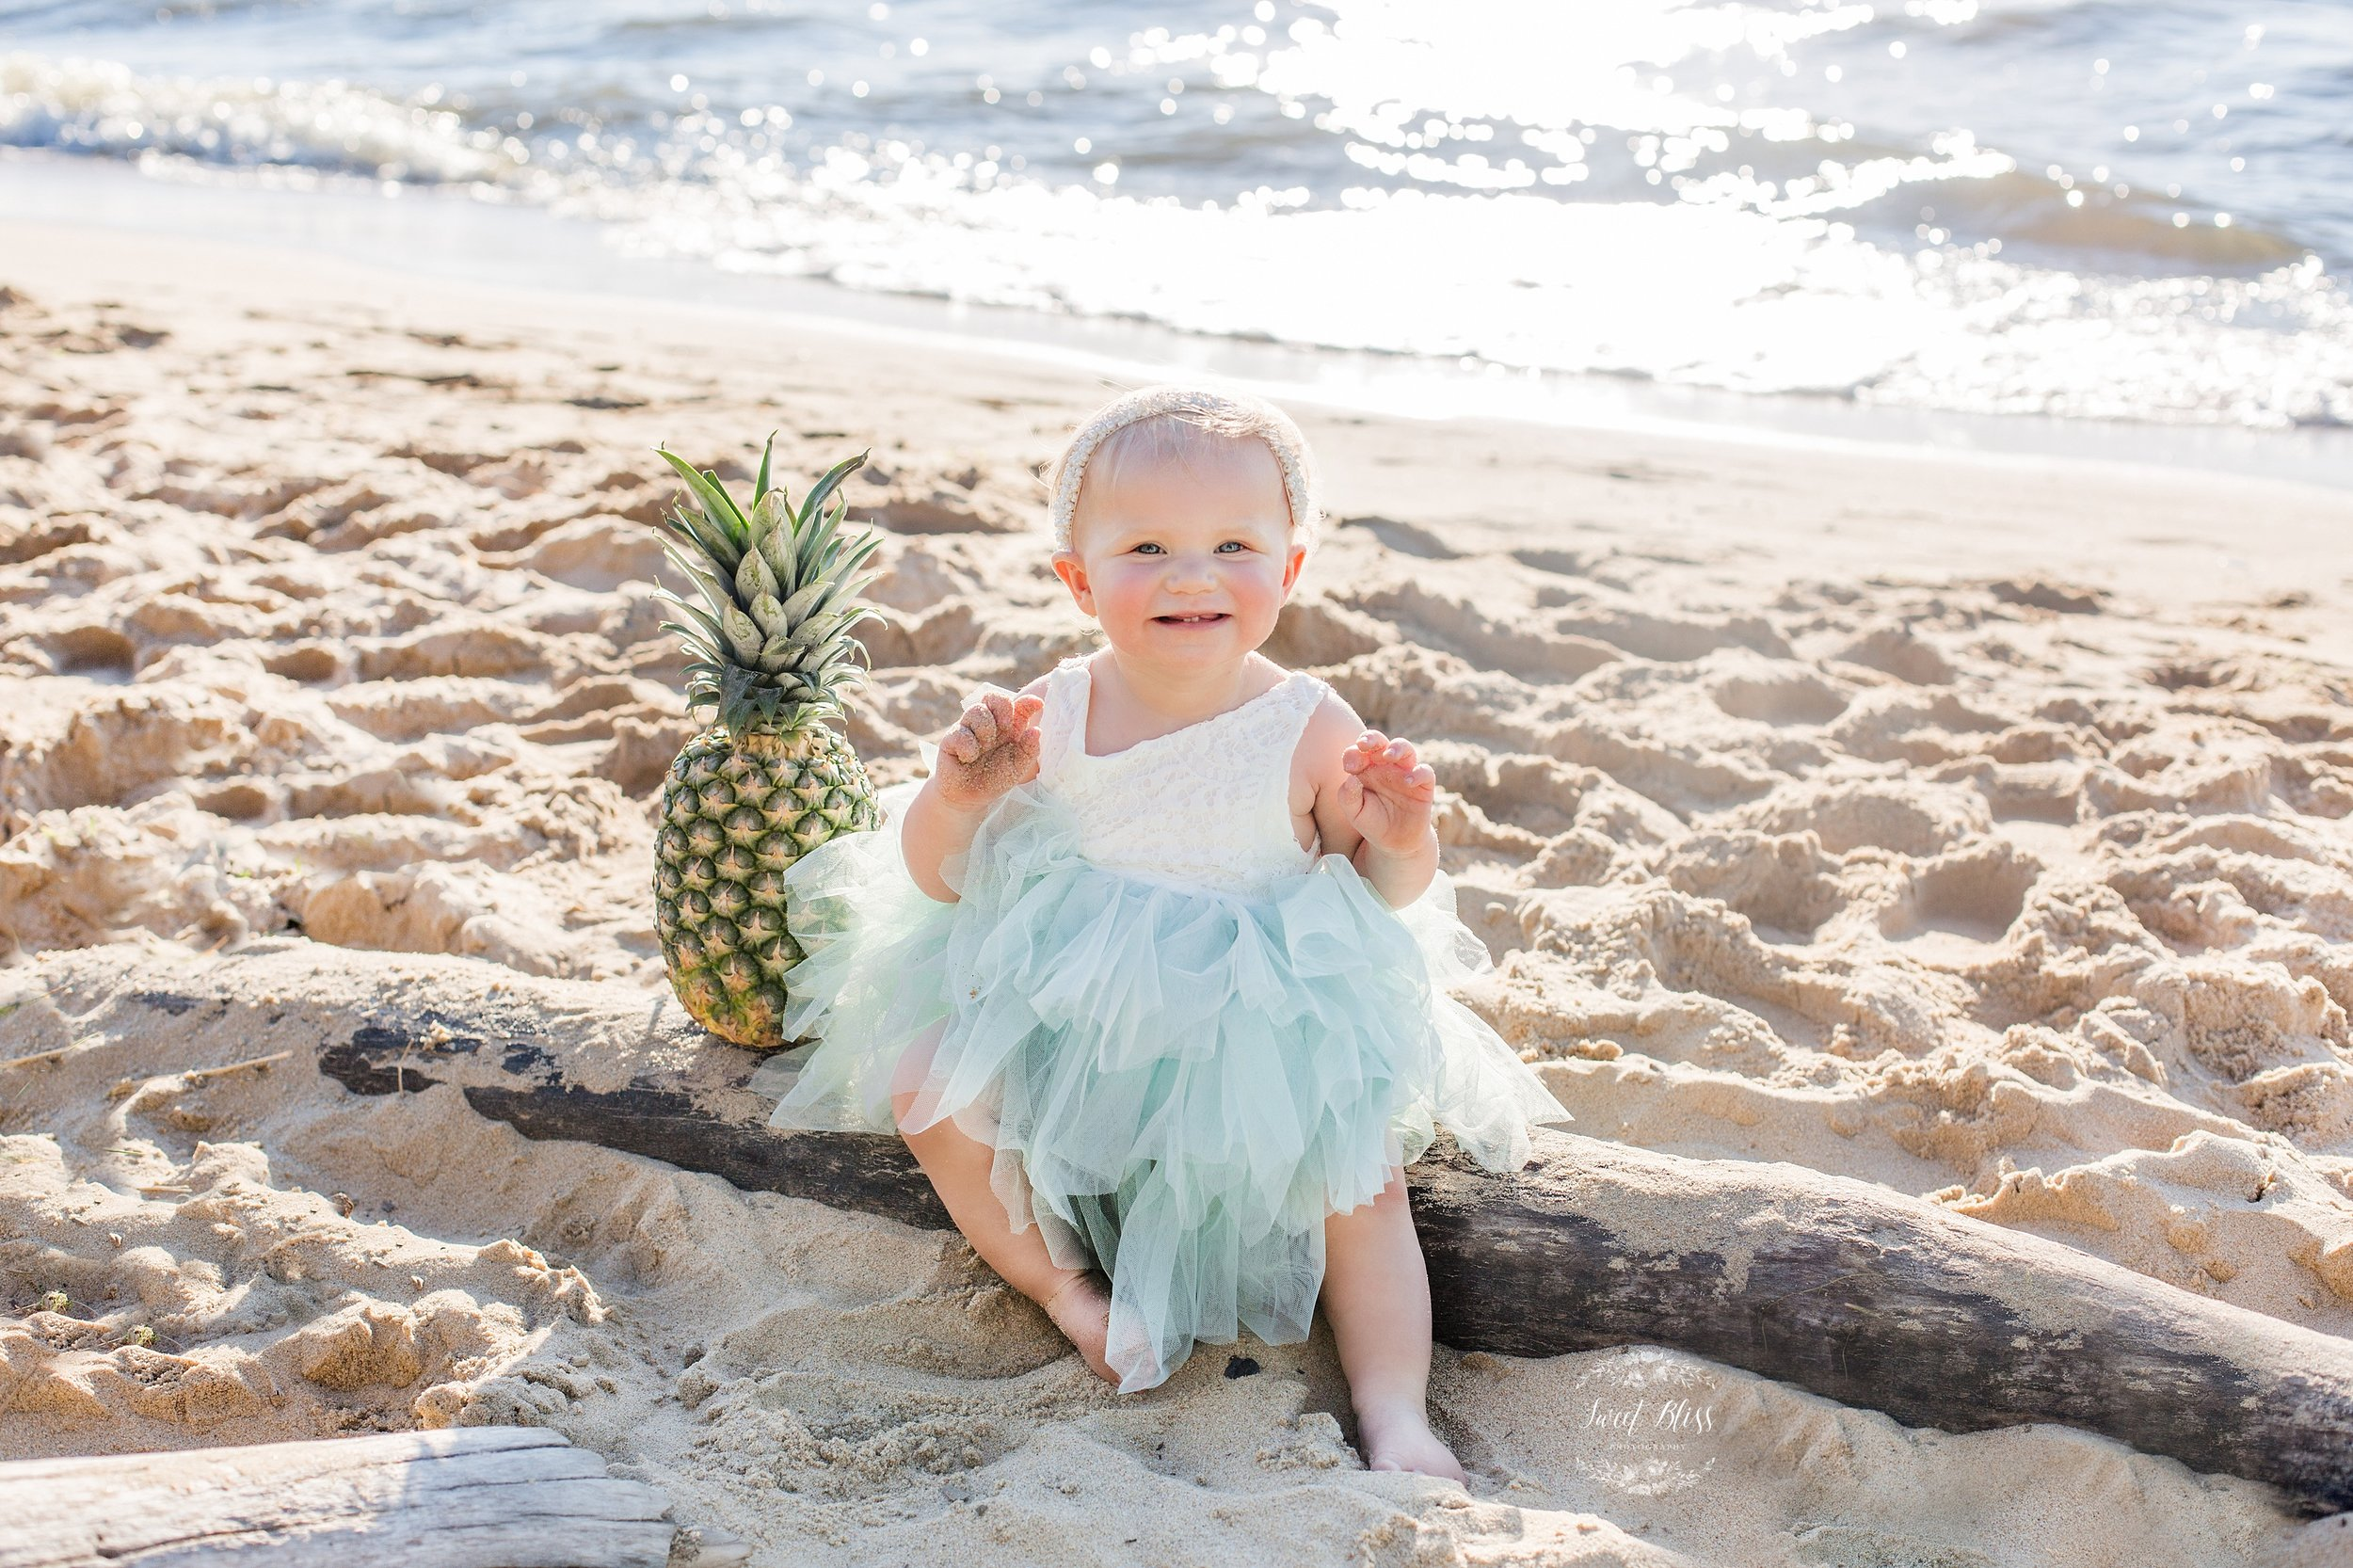 Marylandbabyphotographer_cakesmash_Beach-19.jpg